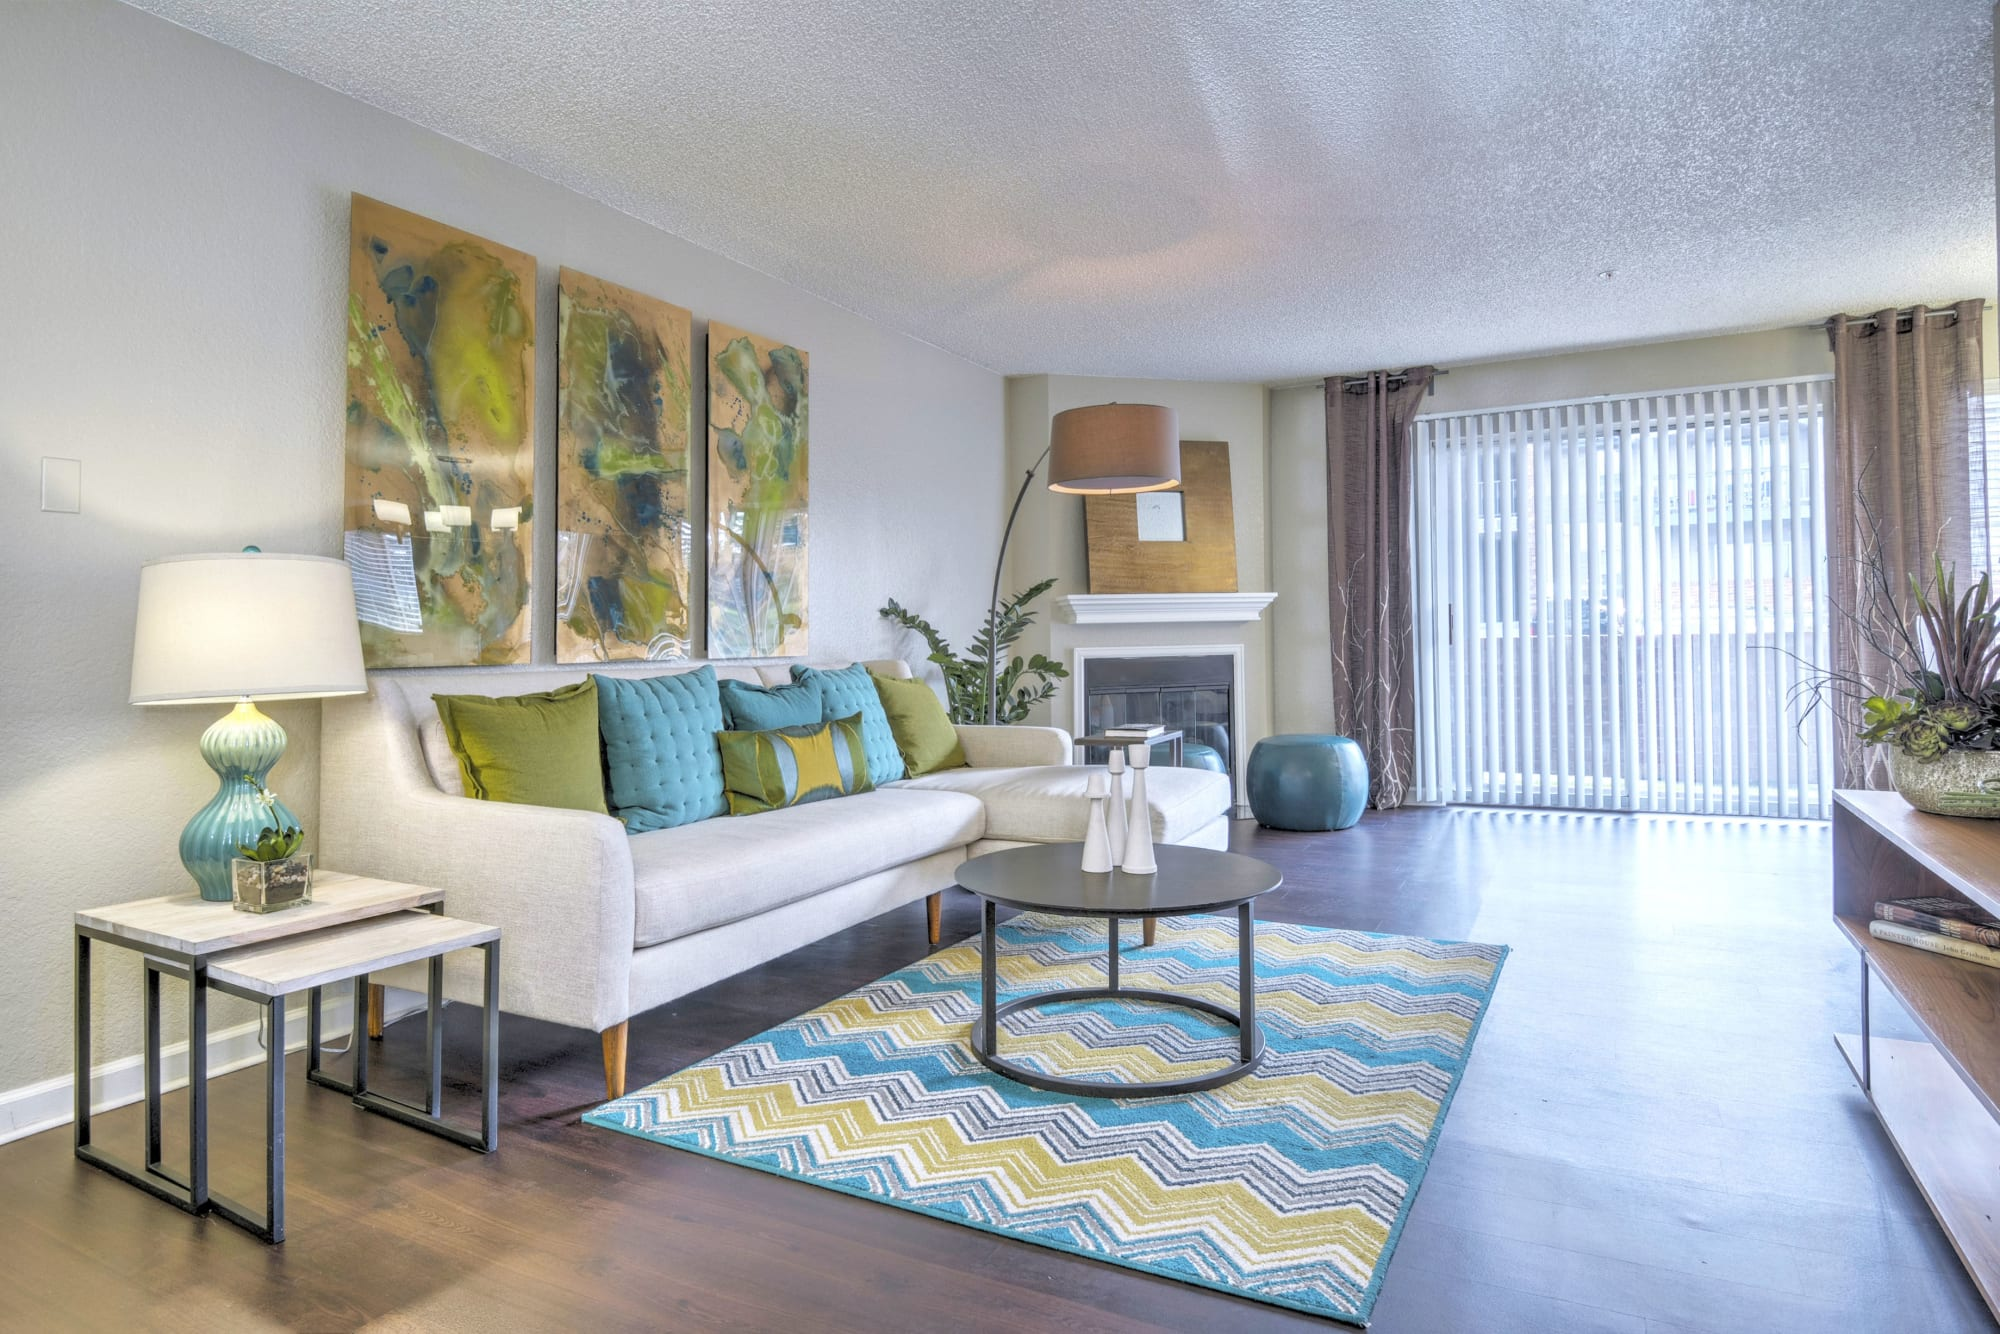 A spacious living room filled with sunlight at Arapahoe Club Apartments in Denver, Colorado